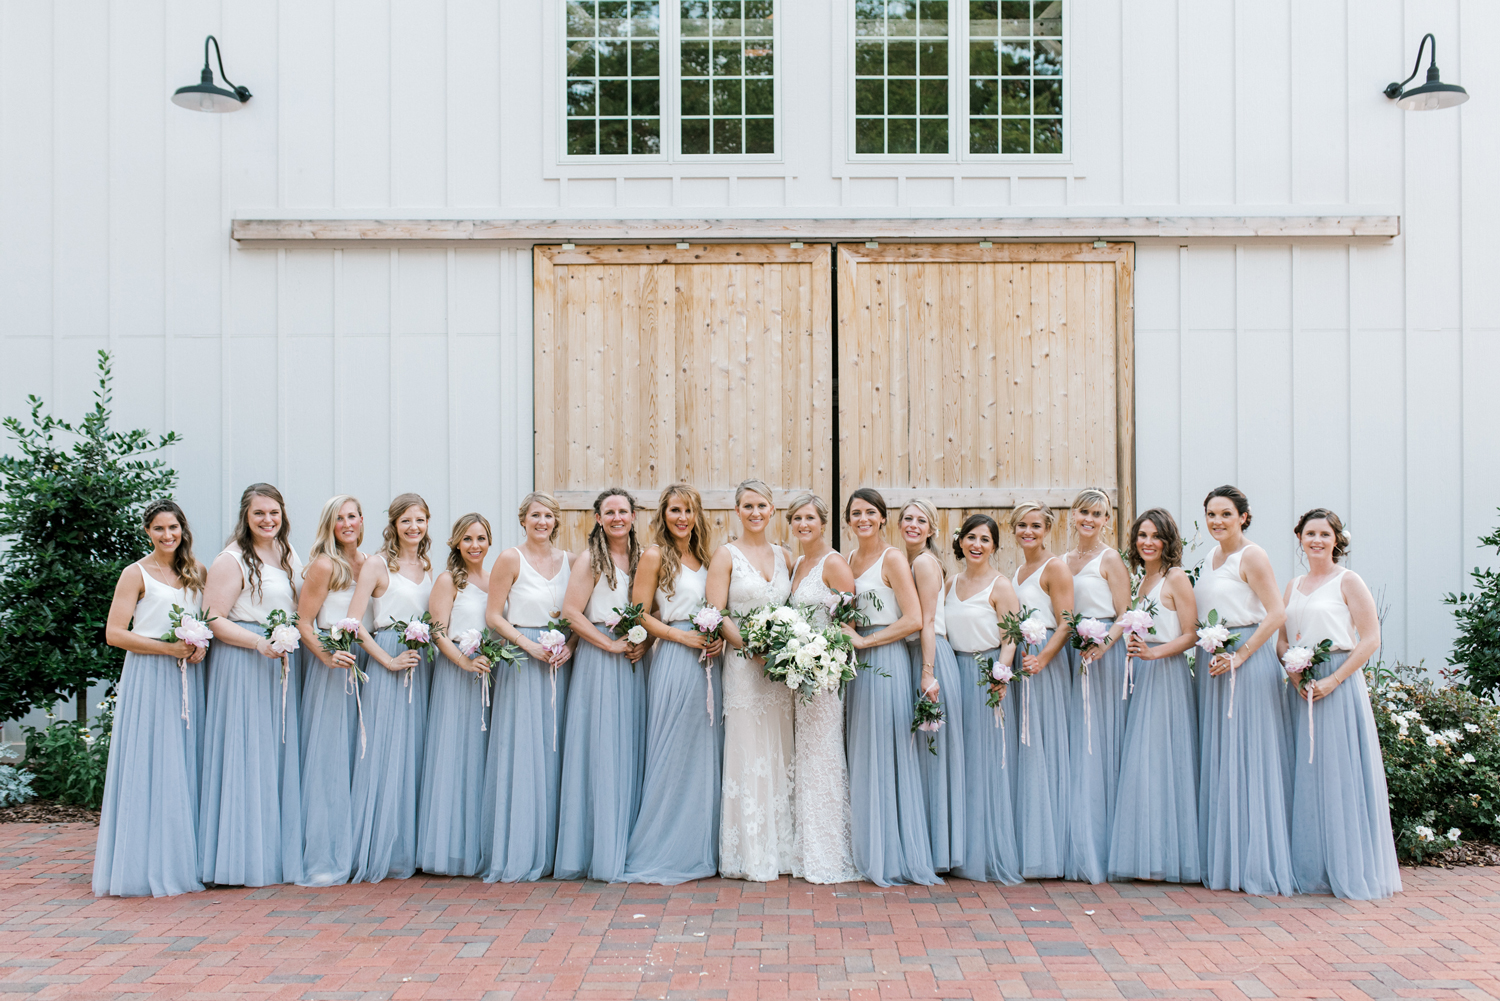 paige and kristine wedding brides with bridesmaids